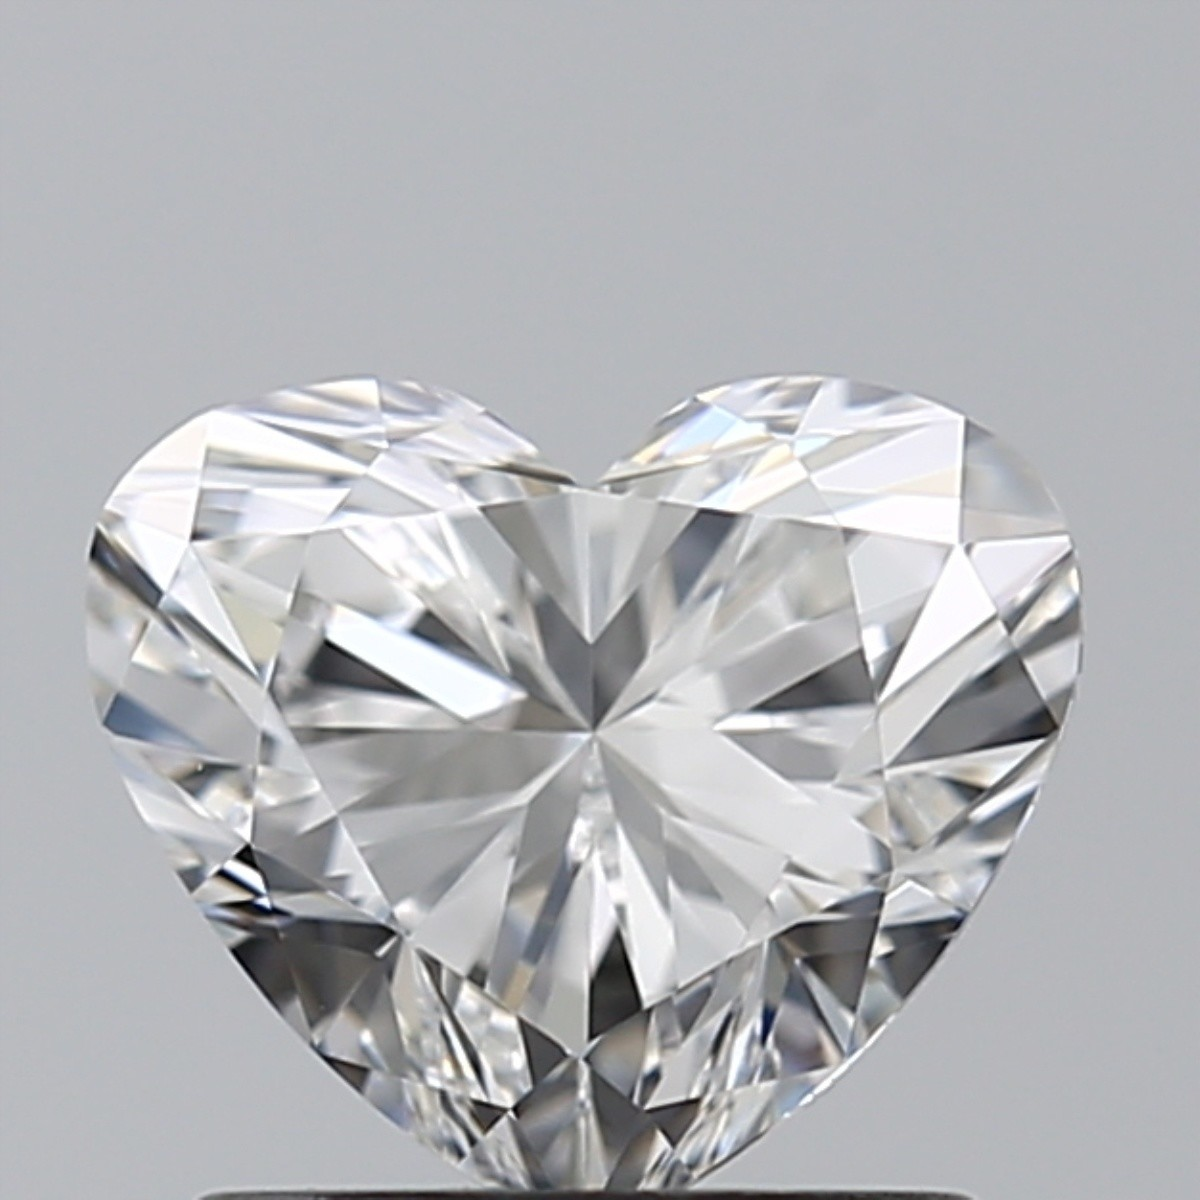 1.01 Carat Heart Diamond (F/VVS1)